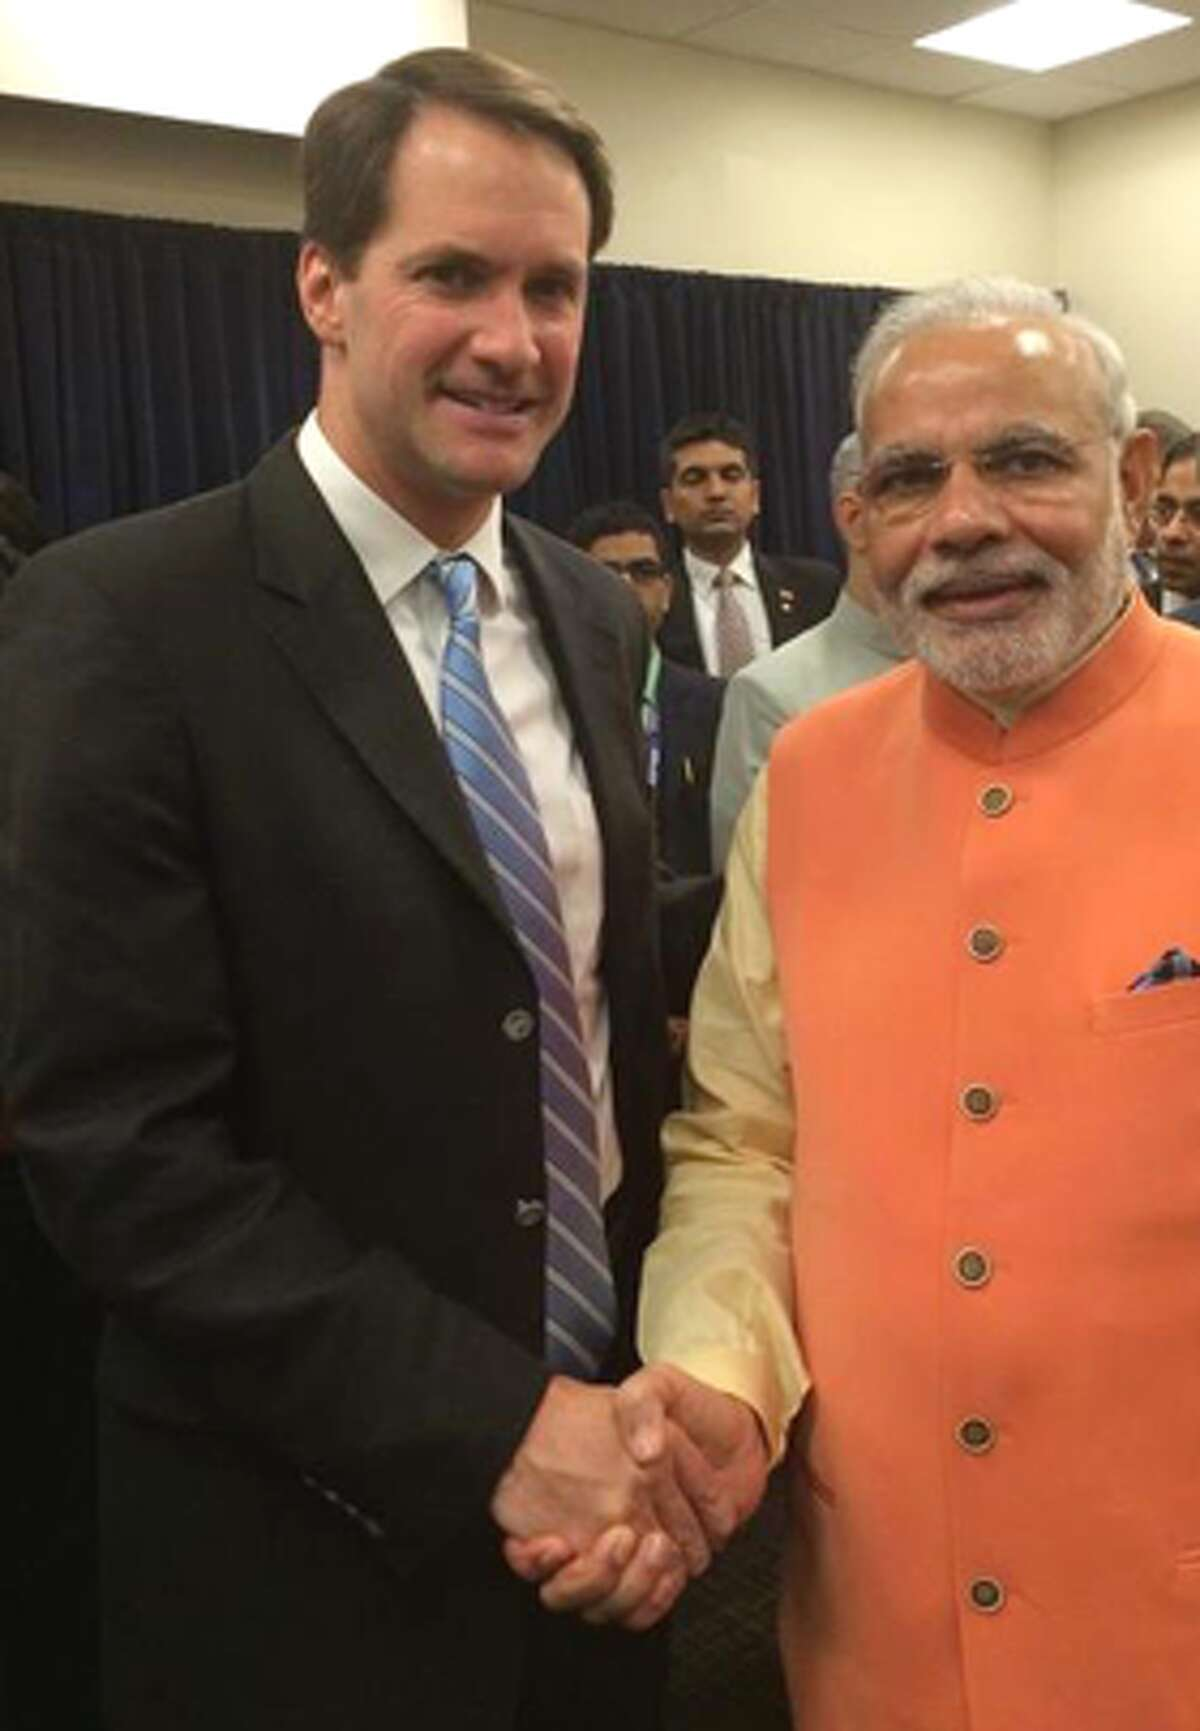 Rep. Jim Himes with India's Prime Minister Narendra Modi, who is on a state visit to the United States after addressing the U.N. General Assembly.